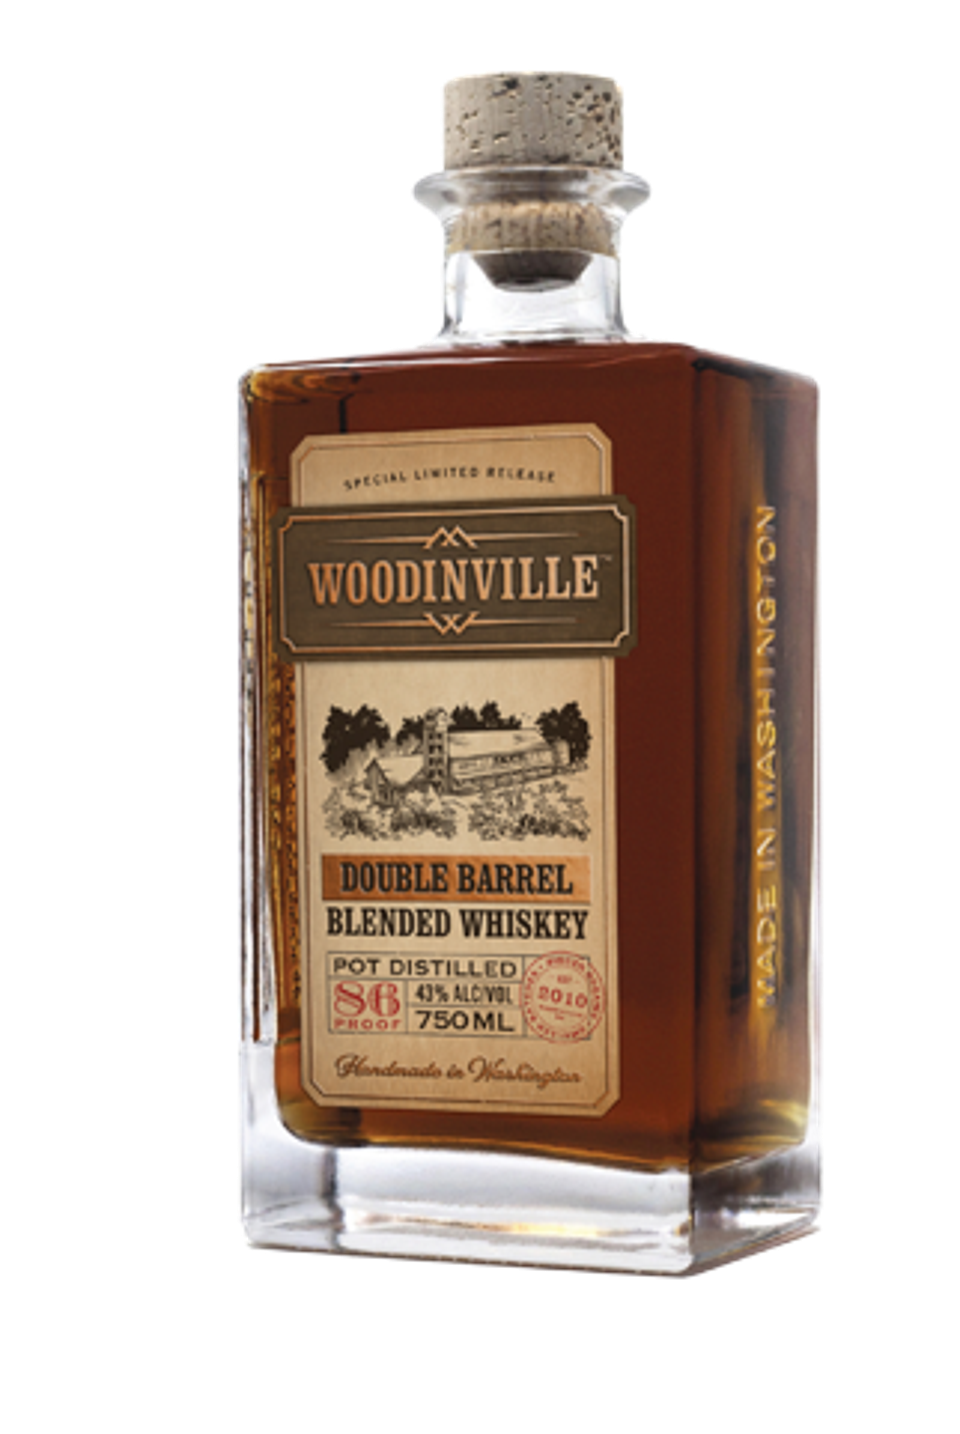 Woodinville Double Barrel Blended Whiskey